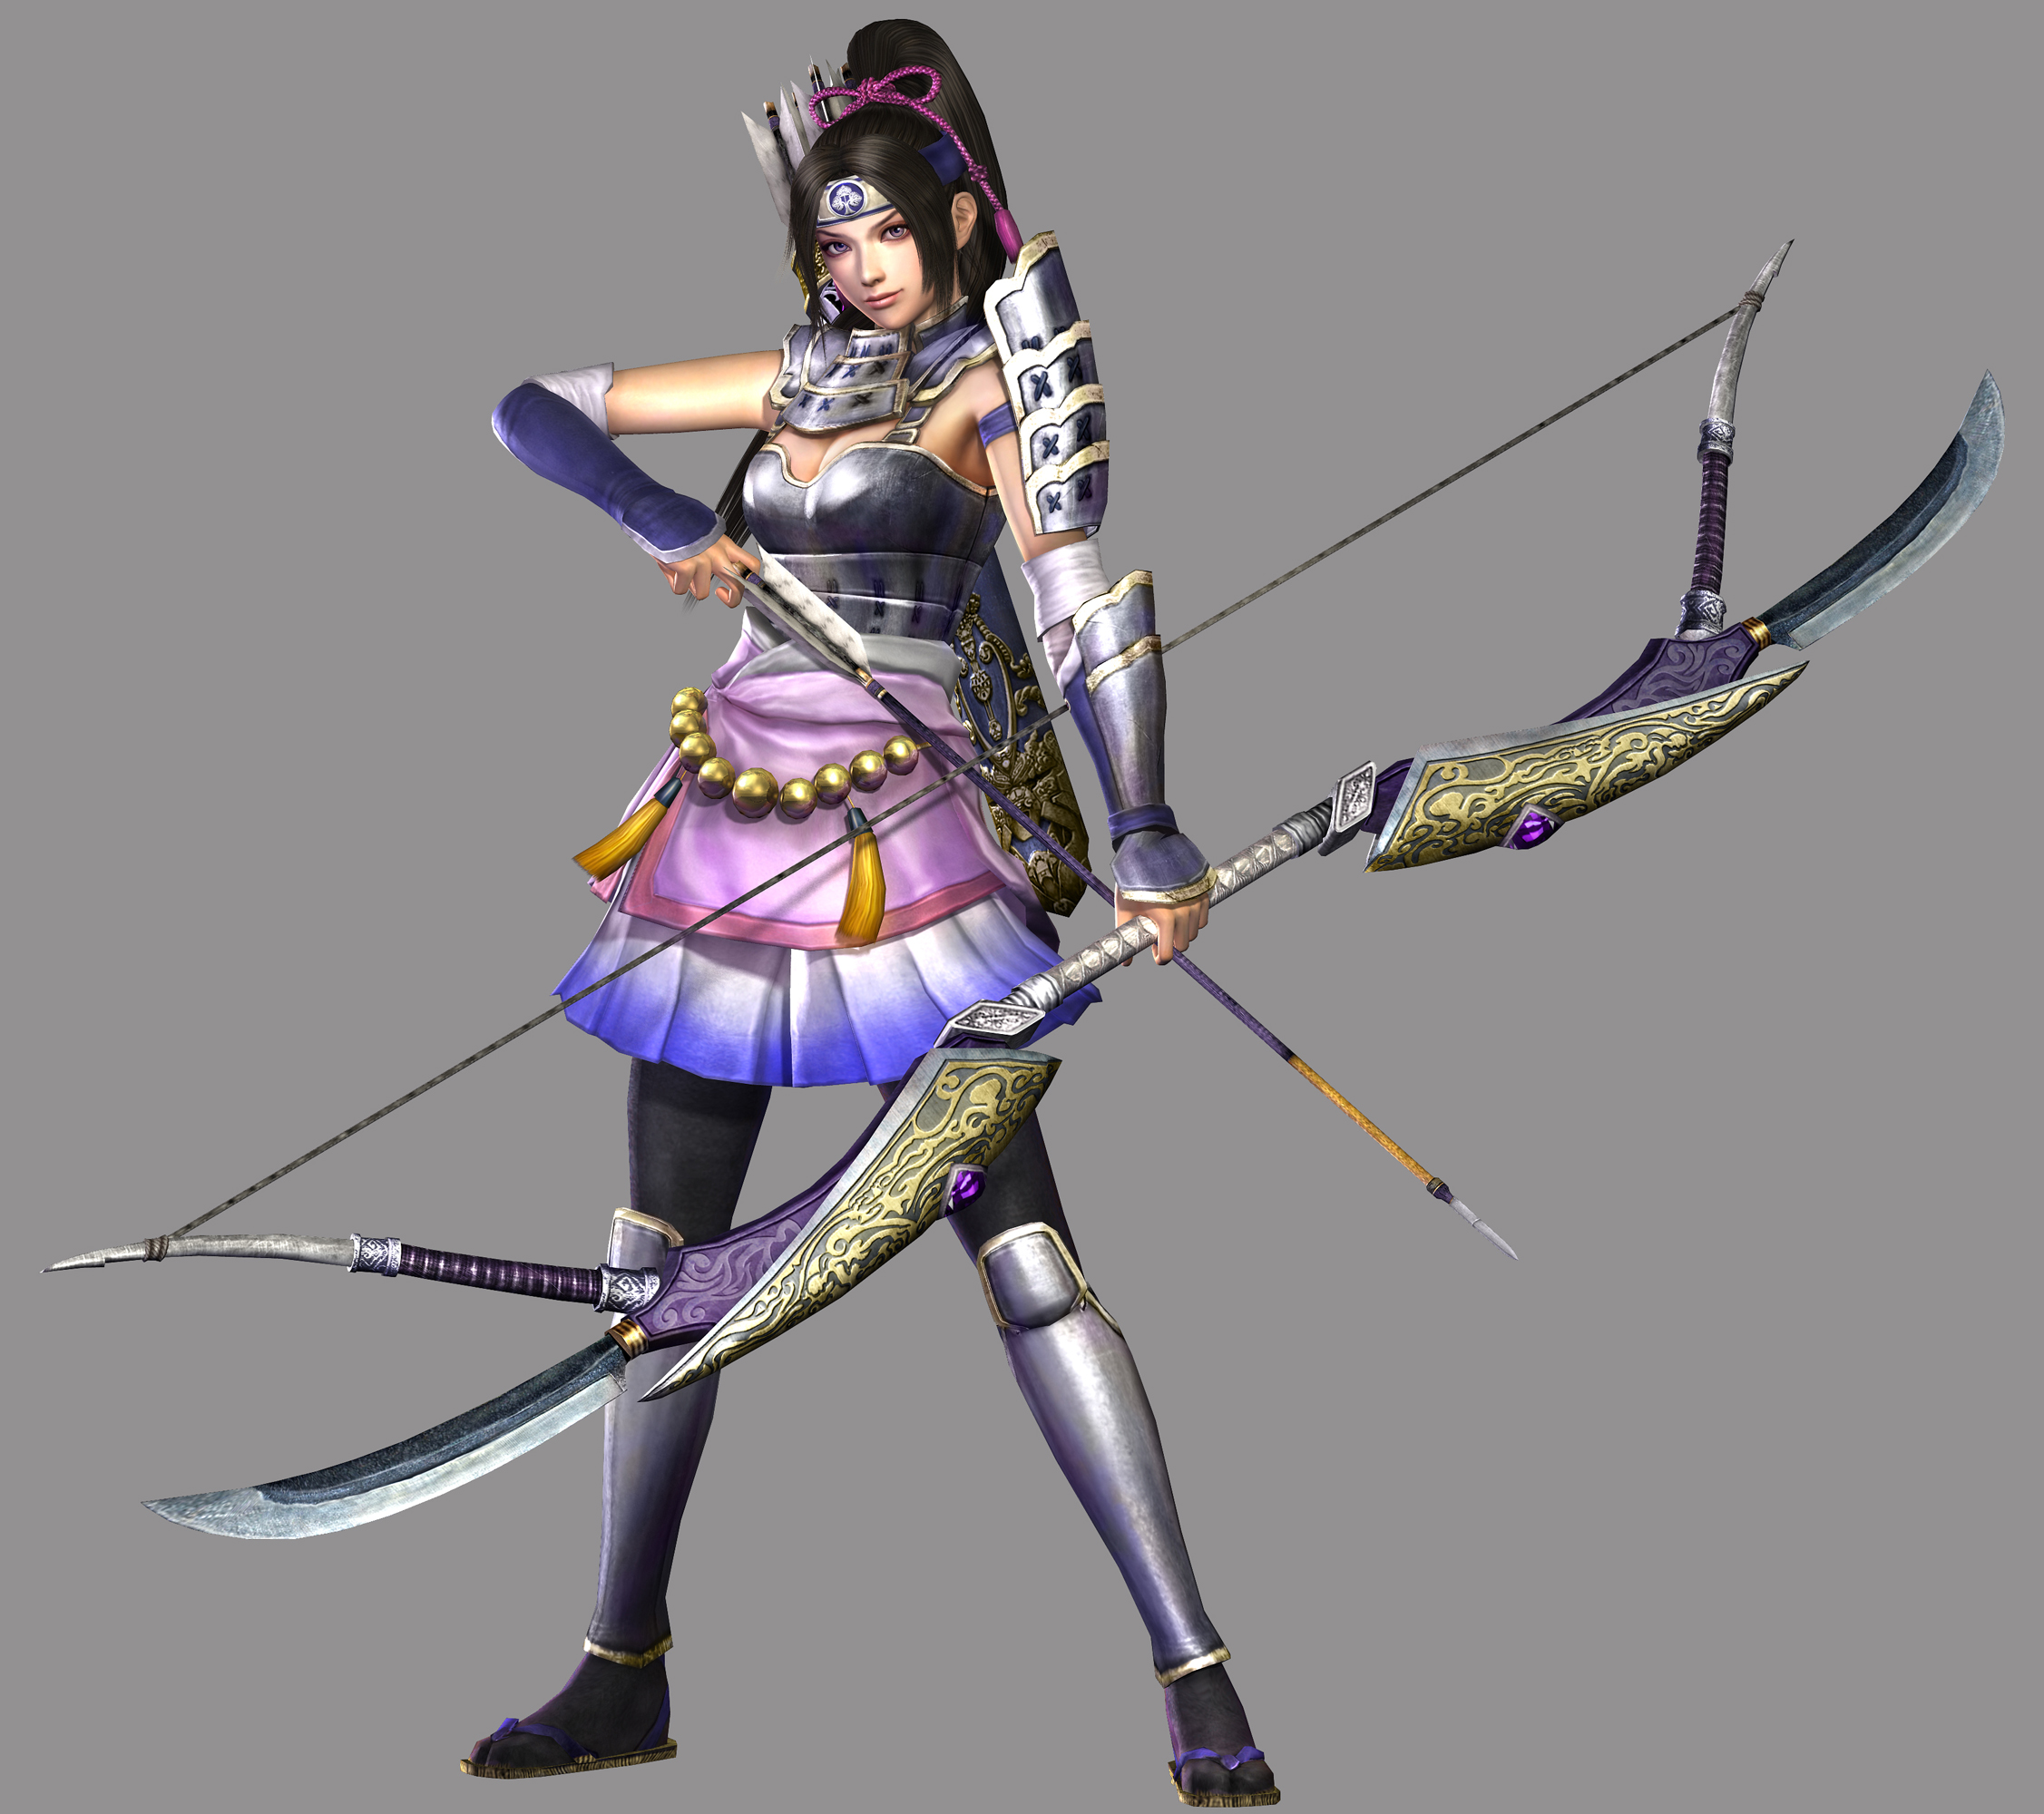 Warriors Orochi 4 Xbox Review: [Update] Samurai Warriors 3 Screenshots And Gameplay